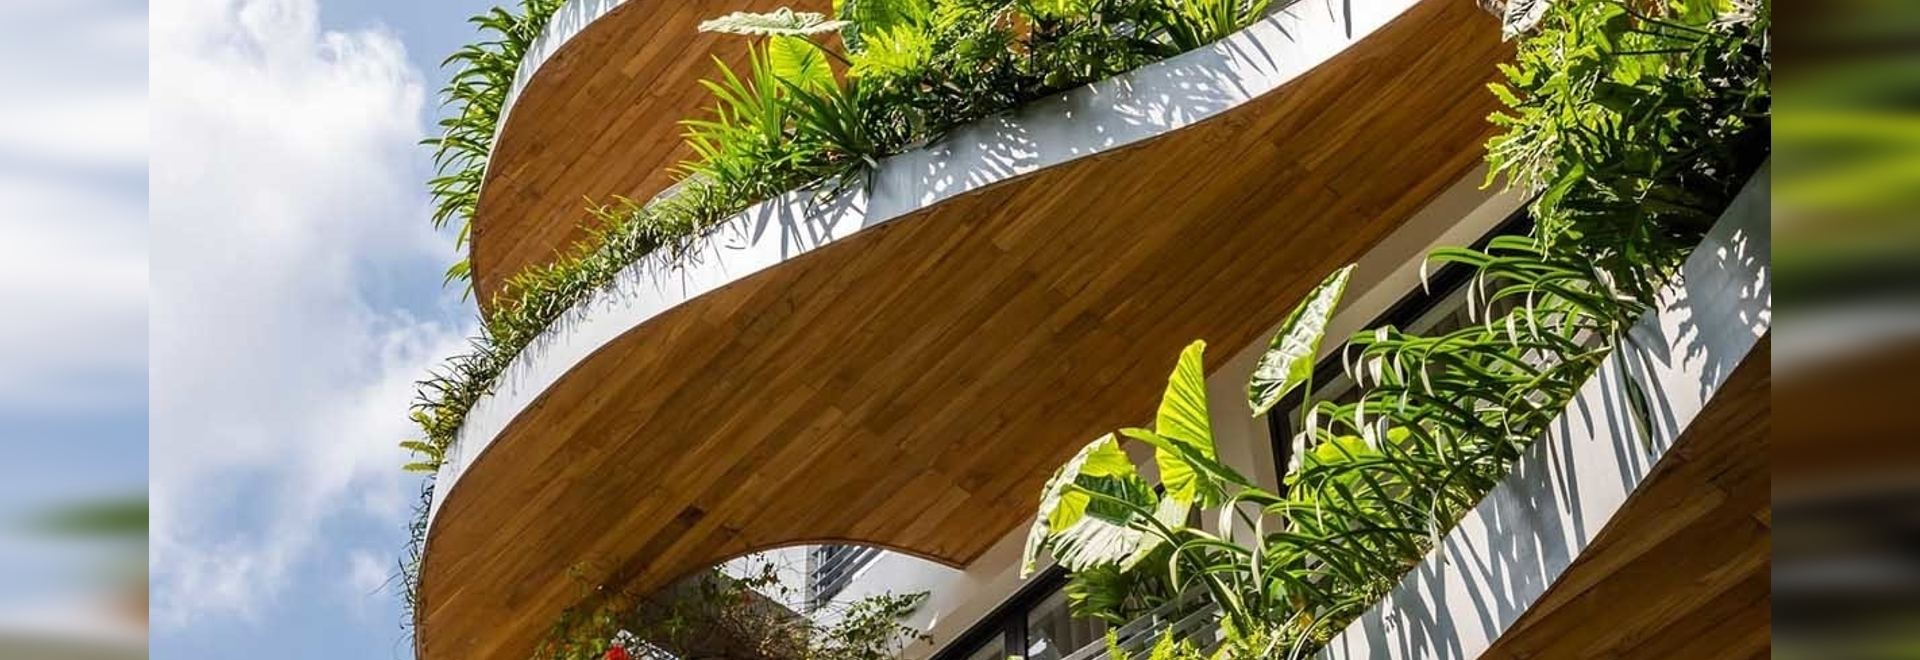 Wavy Balconies With Overhanging Plants Are A Design Feature On This Apartment Building